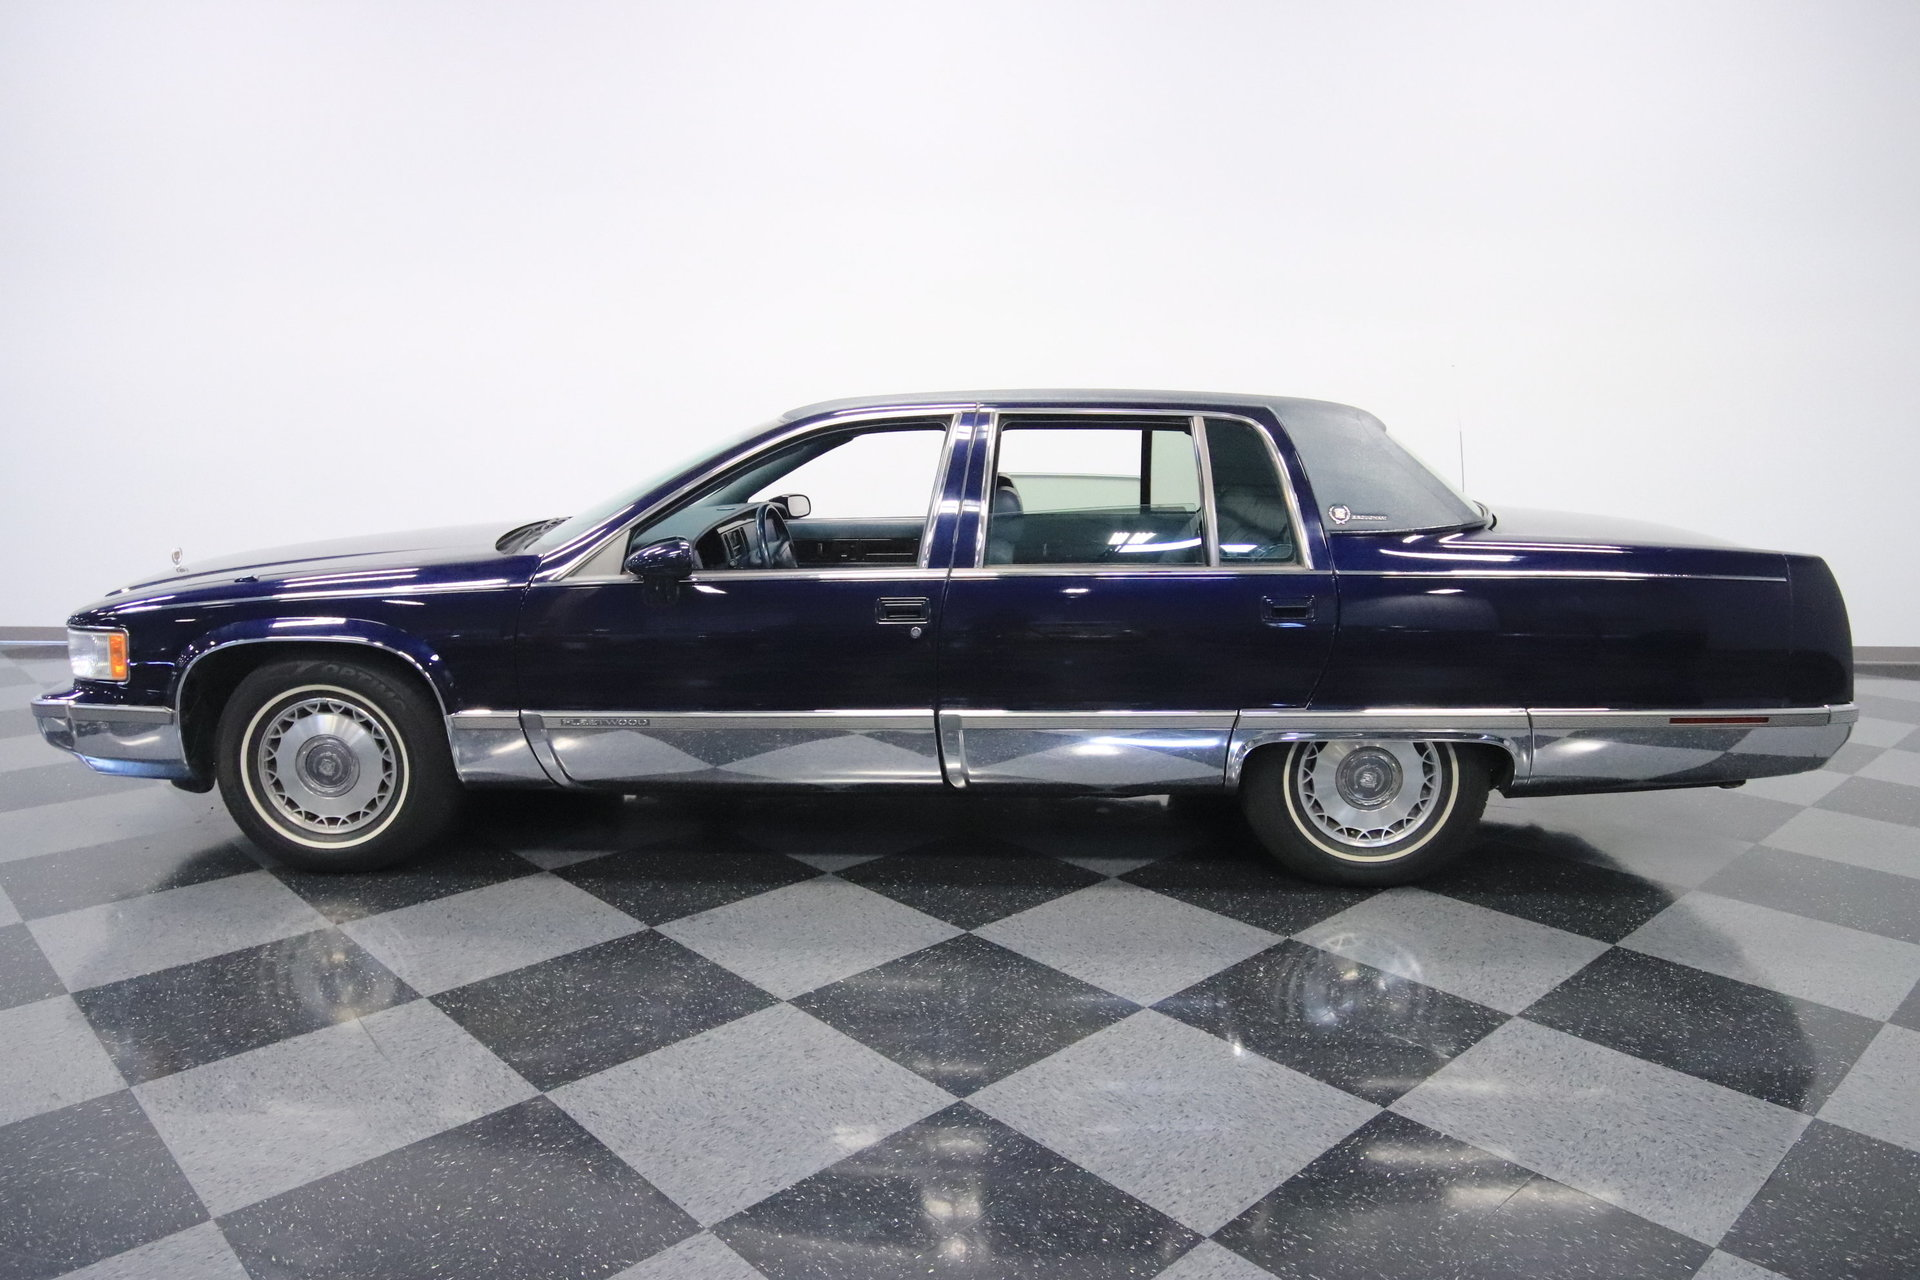 1994 1994 Cadillac Fleetwood For Sale 1994 1994 Cadillac Fleetwood For Sale  ...